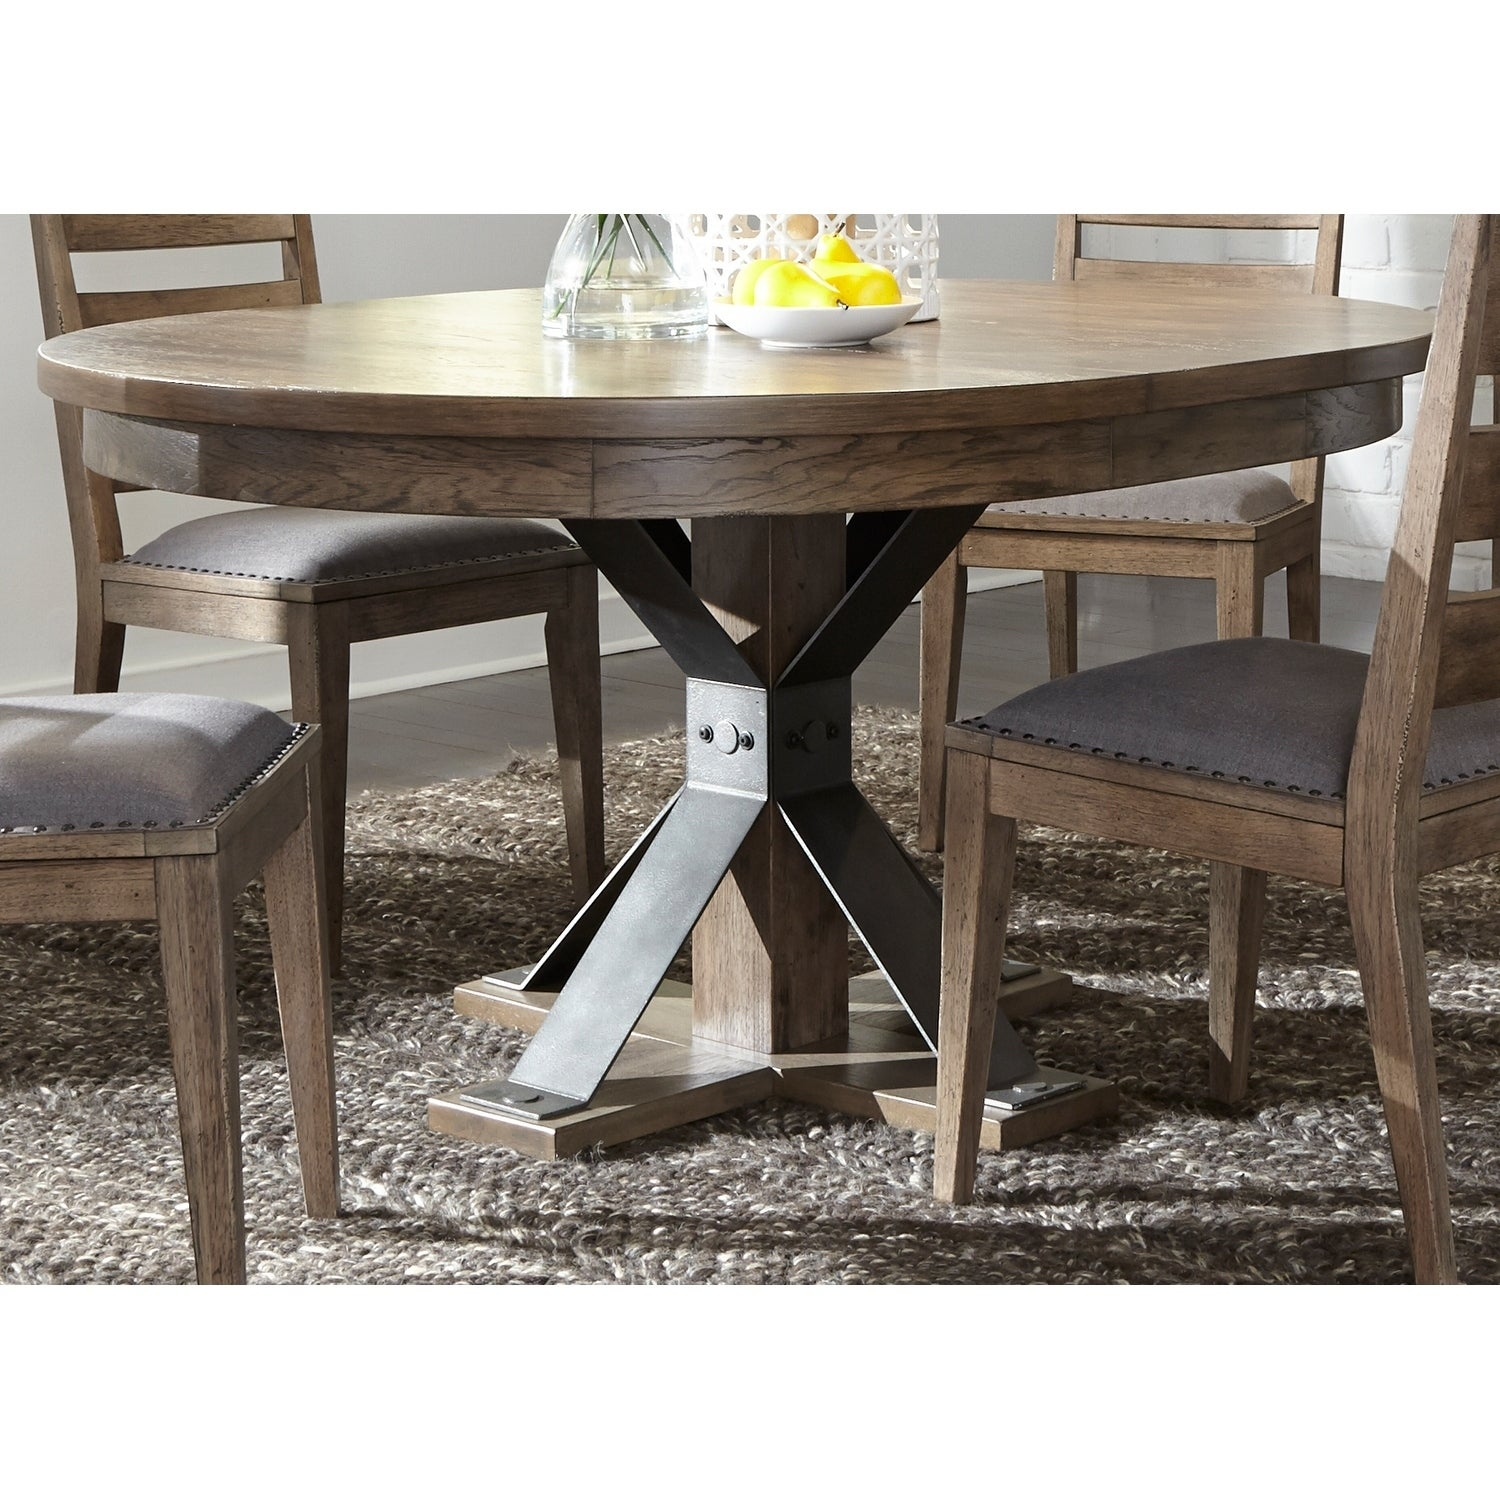 Shop Sonoma Road Weather Beaten Bark And Metal Pedestal Table Set (5 Piece  Set)   Free Shipping Today   Overstock.com   18620302